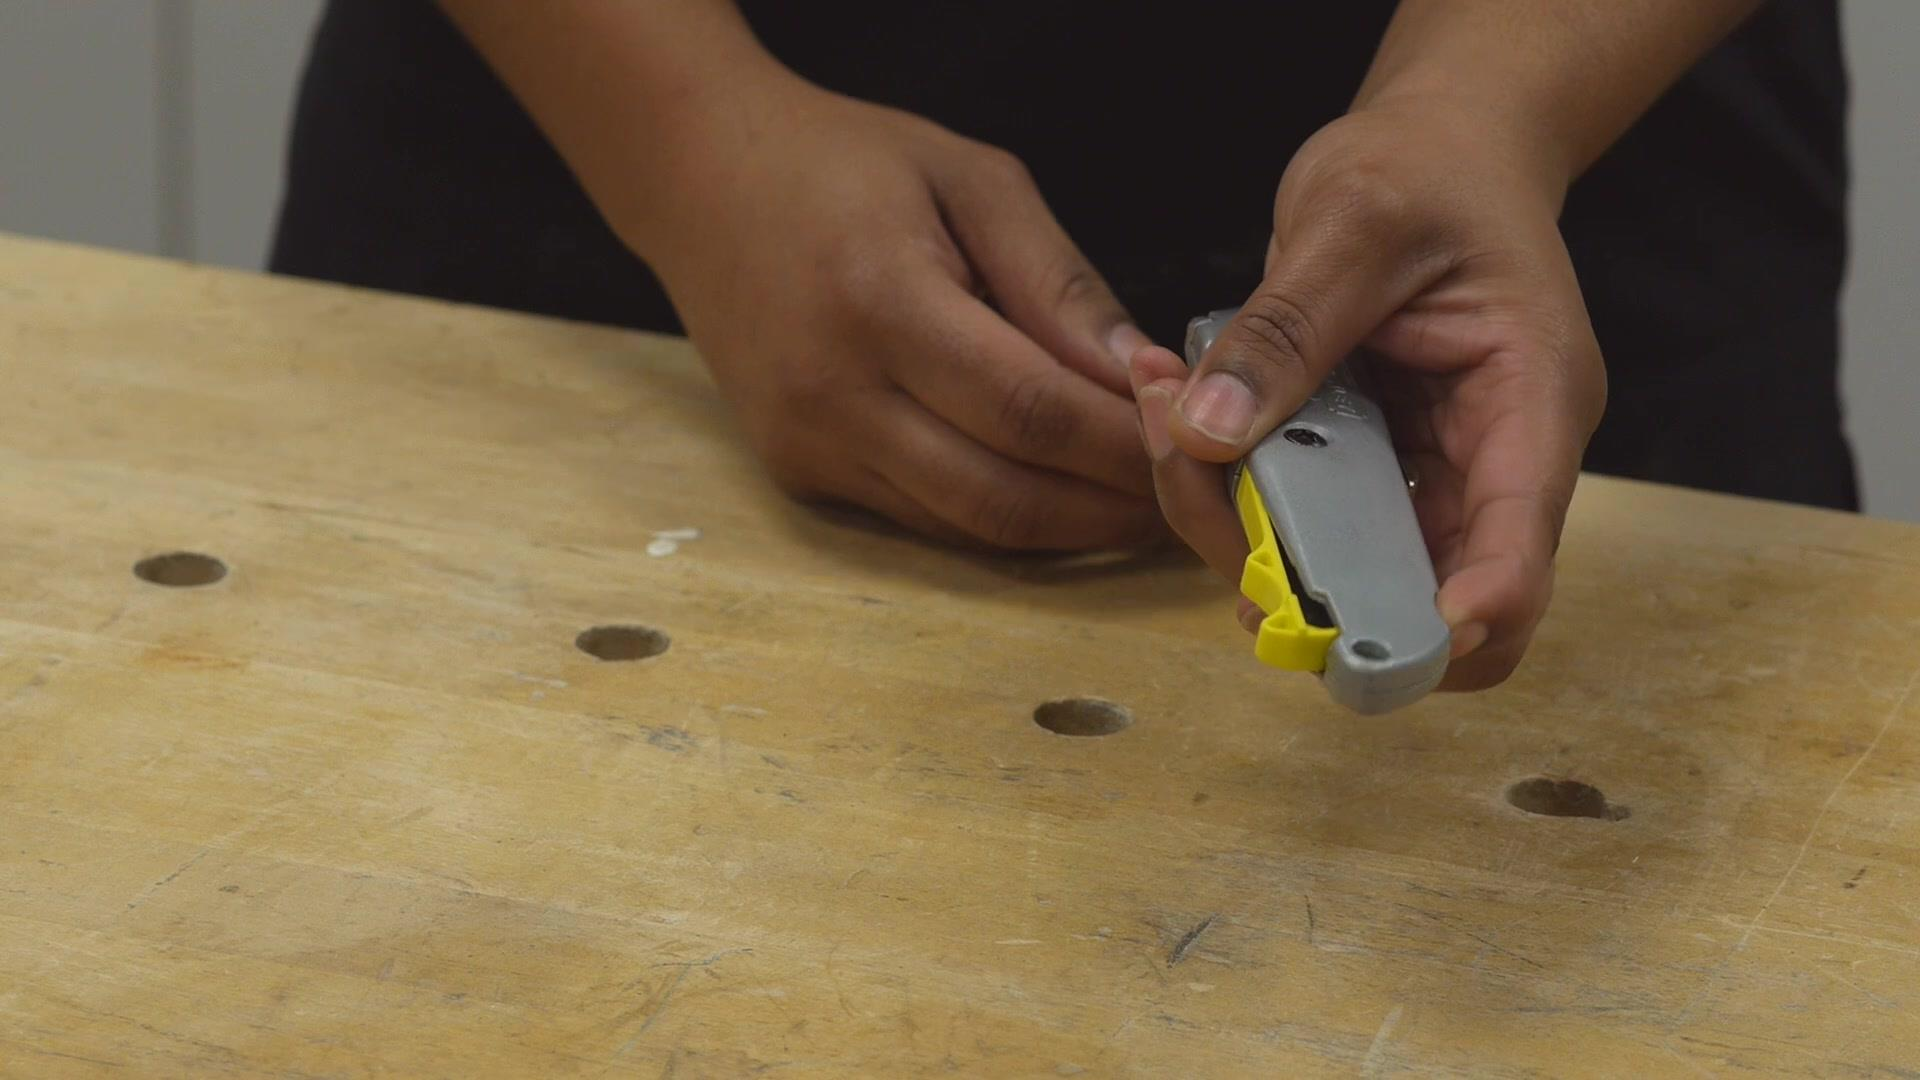 Retractable Utility Knife Features | STANLEY